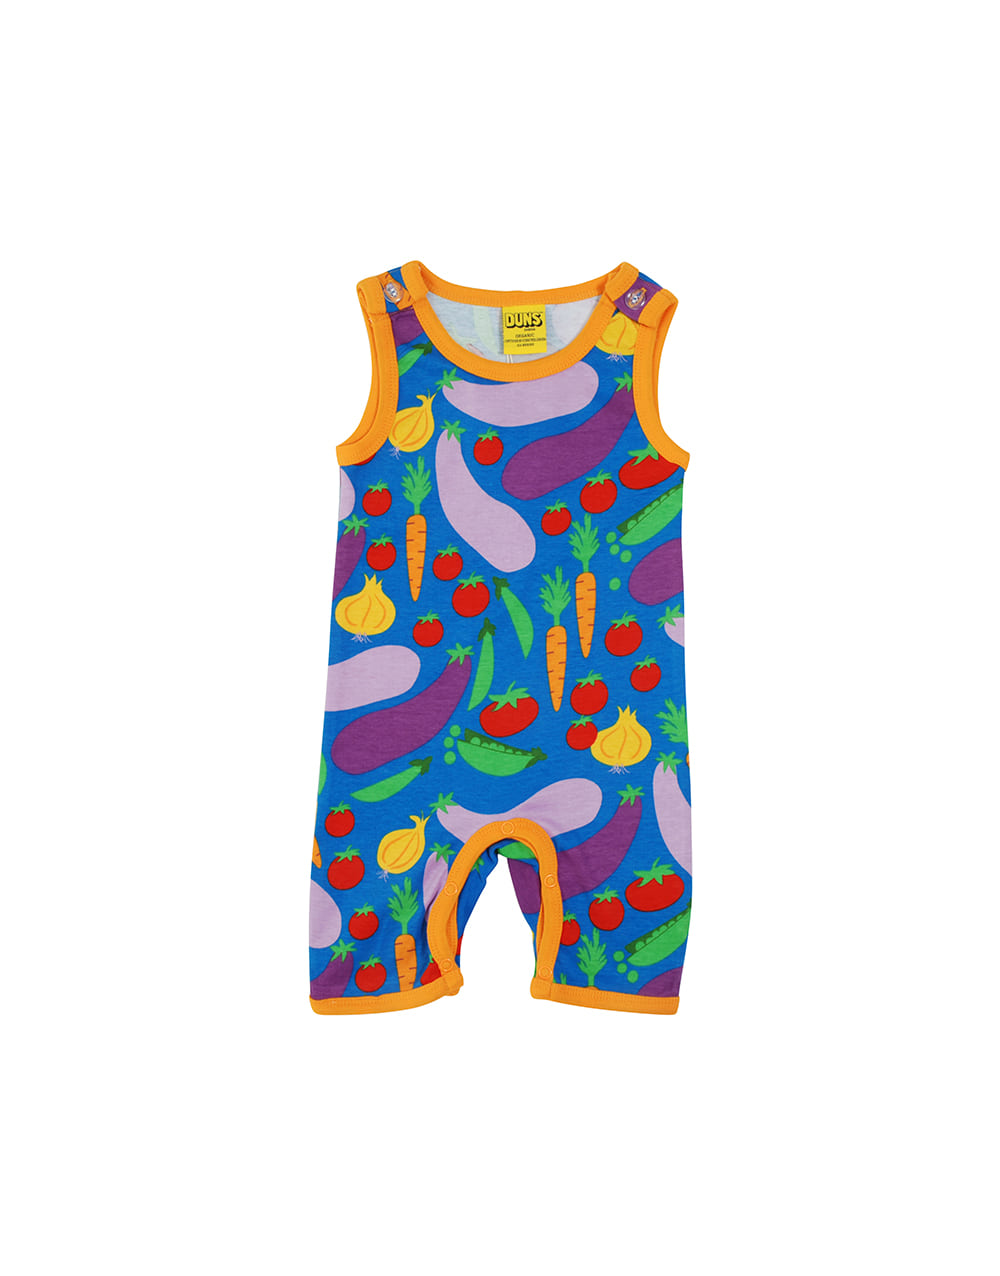 DUNS SWEDEN  Summer DUNGAREES   Cultivate Blue